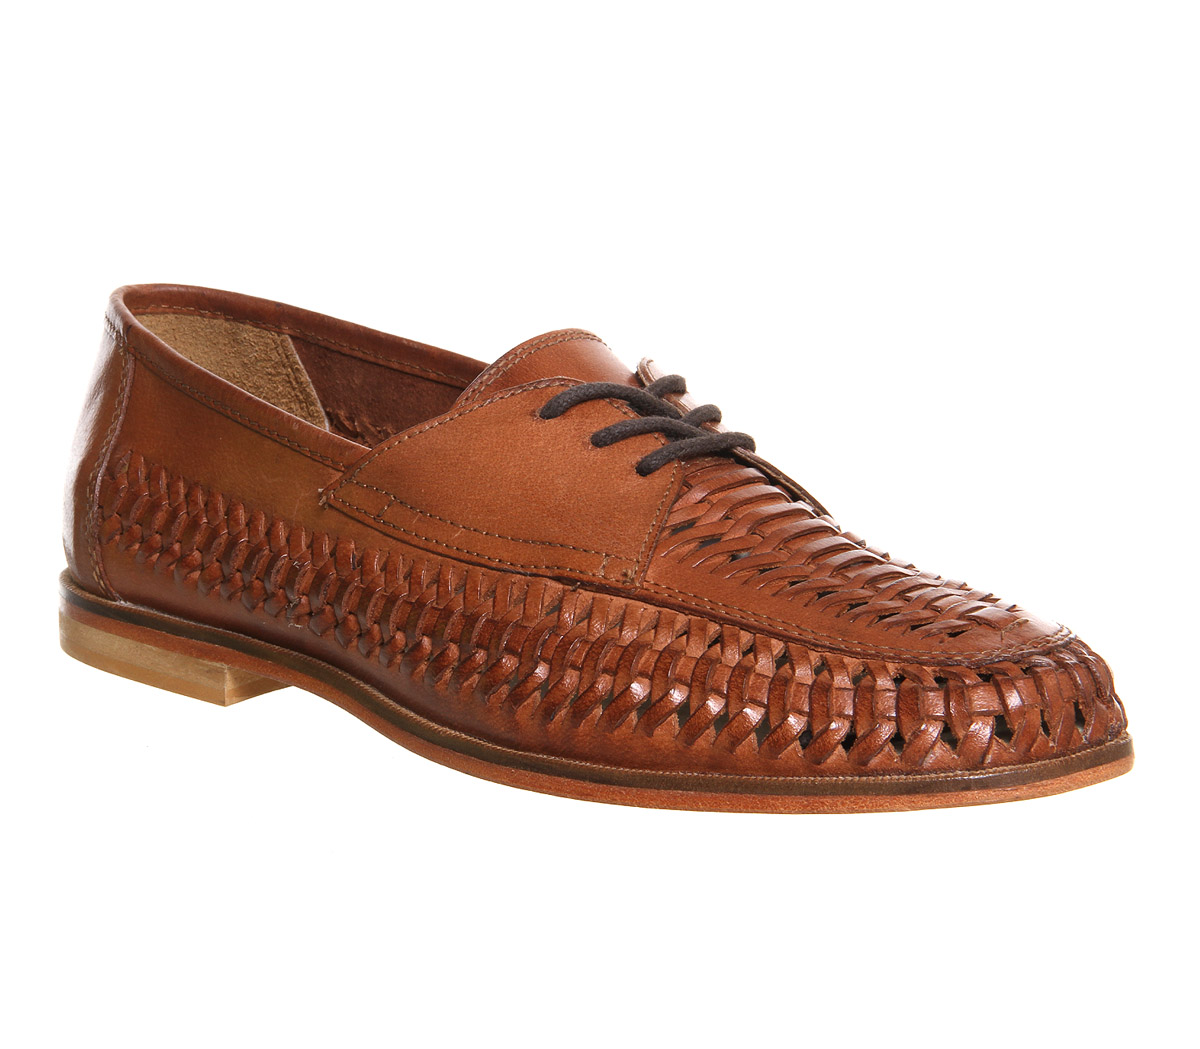 Mens Office Brixton Weave Lace Loafers TAN HI SHINE LEATHER Casual Shoes | EBay